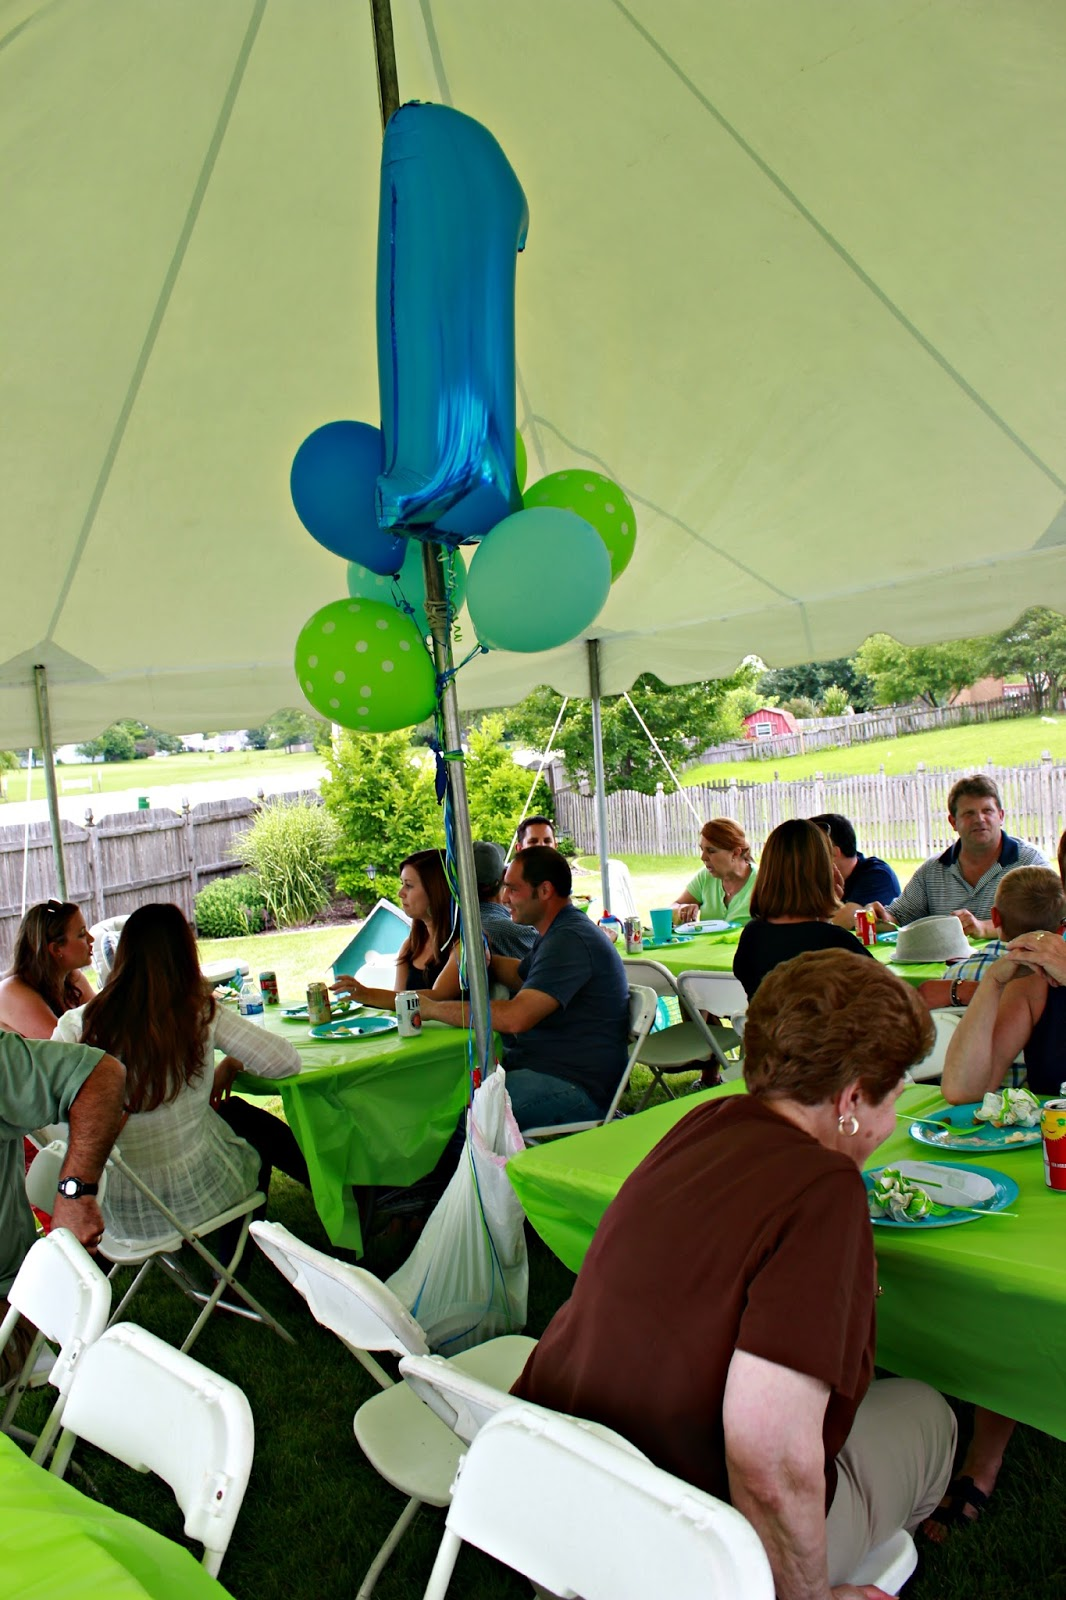 Lime and aqua party